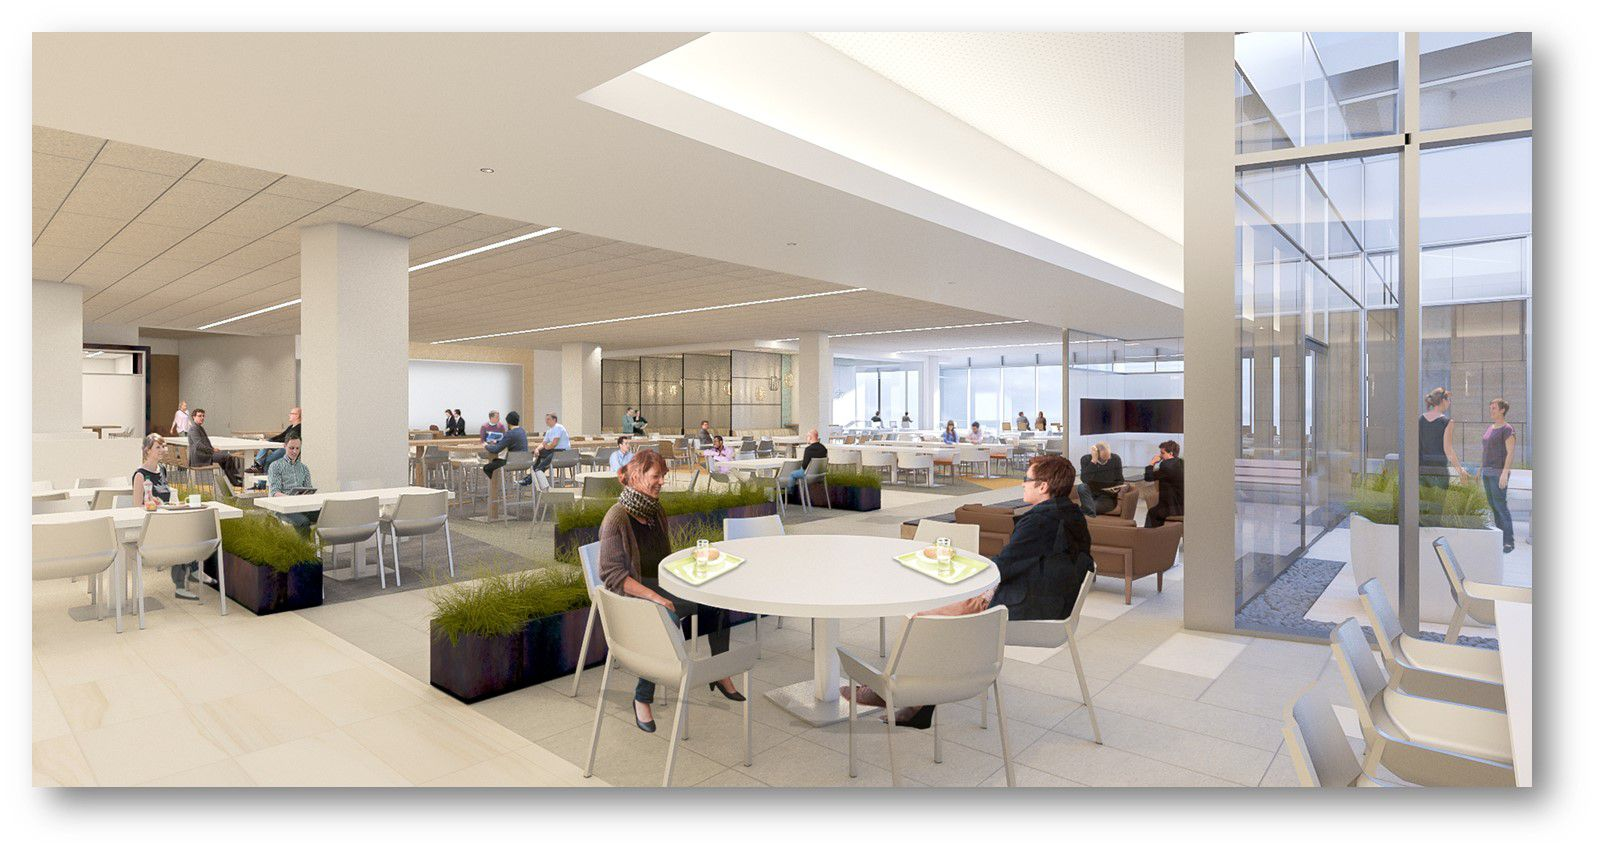 The office campus will have a large cafeteria and dining facilities.